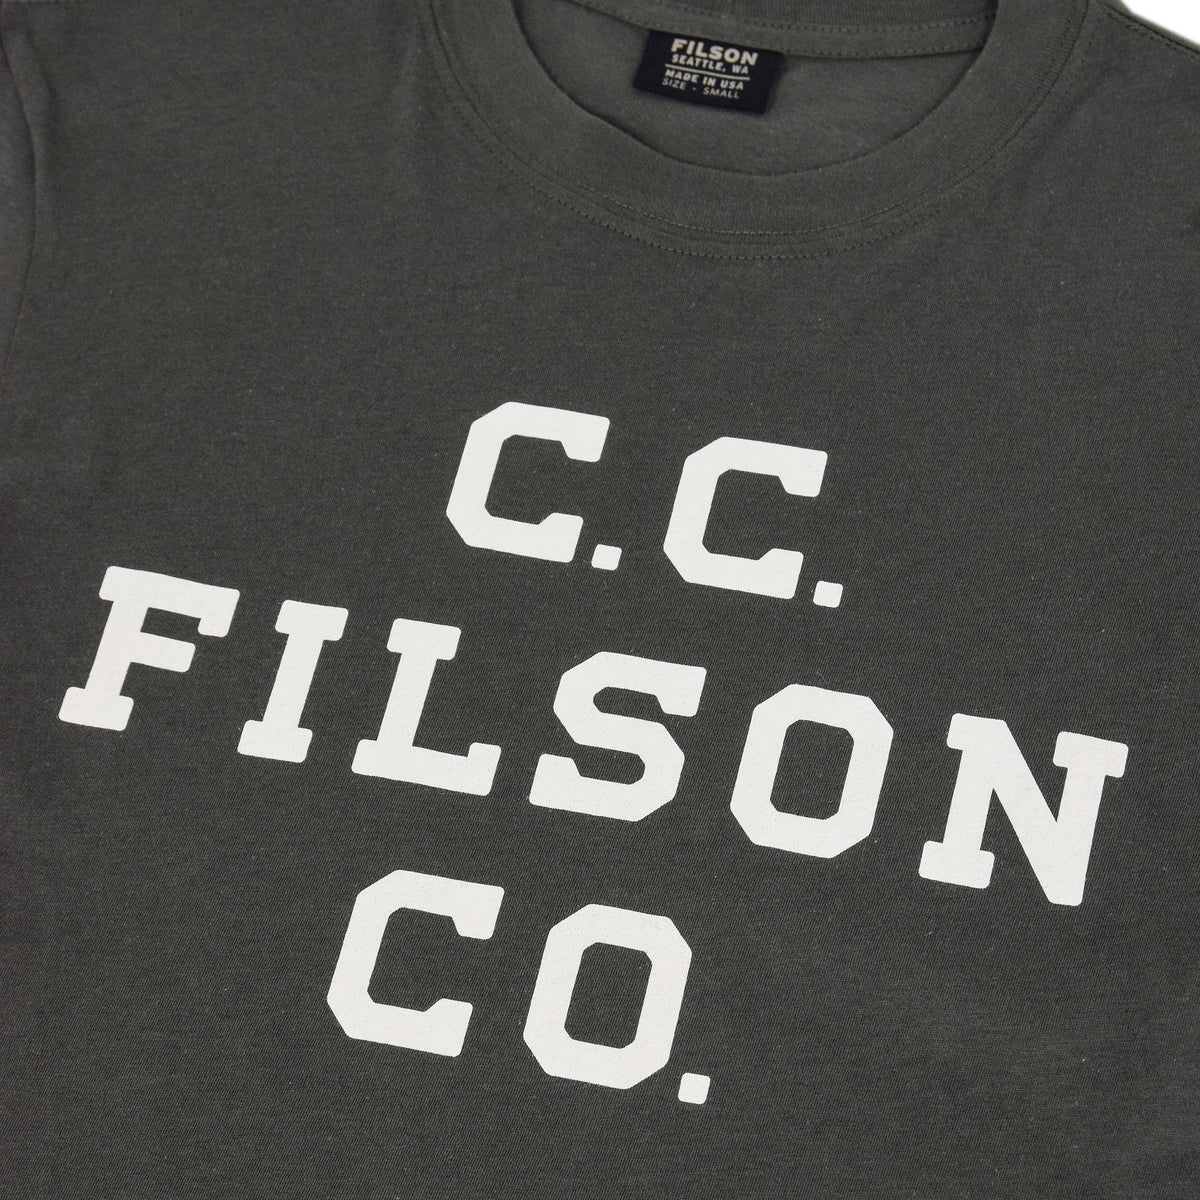 Filson Lightweight Graphic Outfitter T-Shirt Charcoal graphic